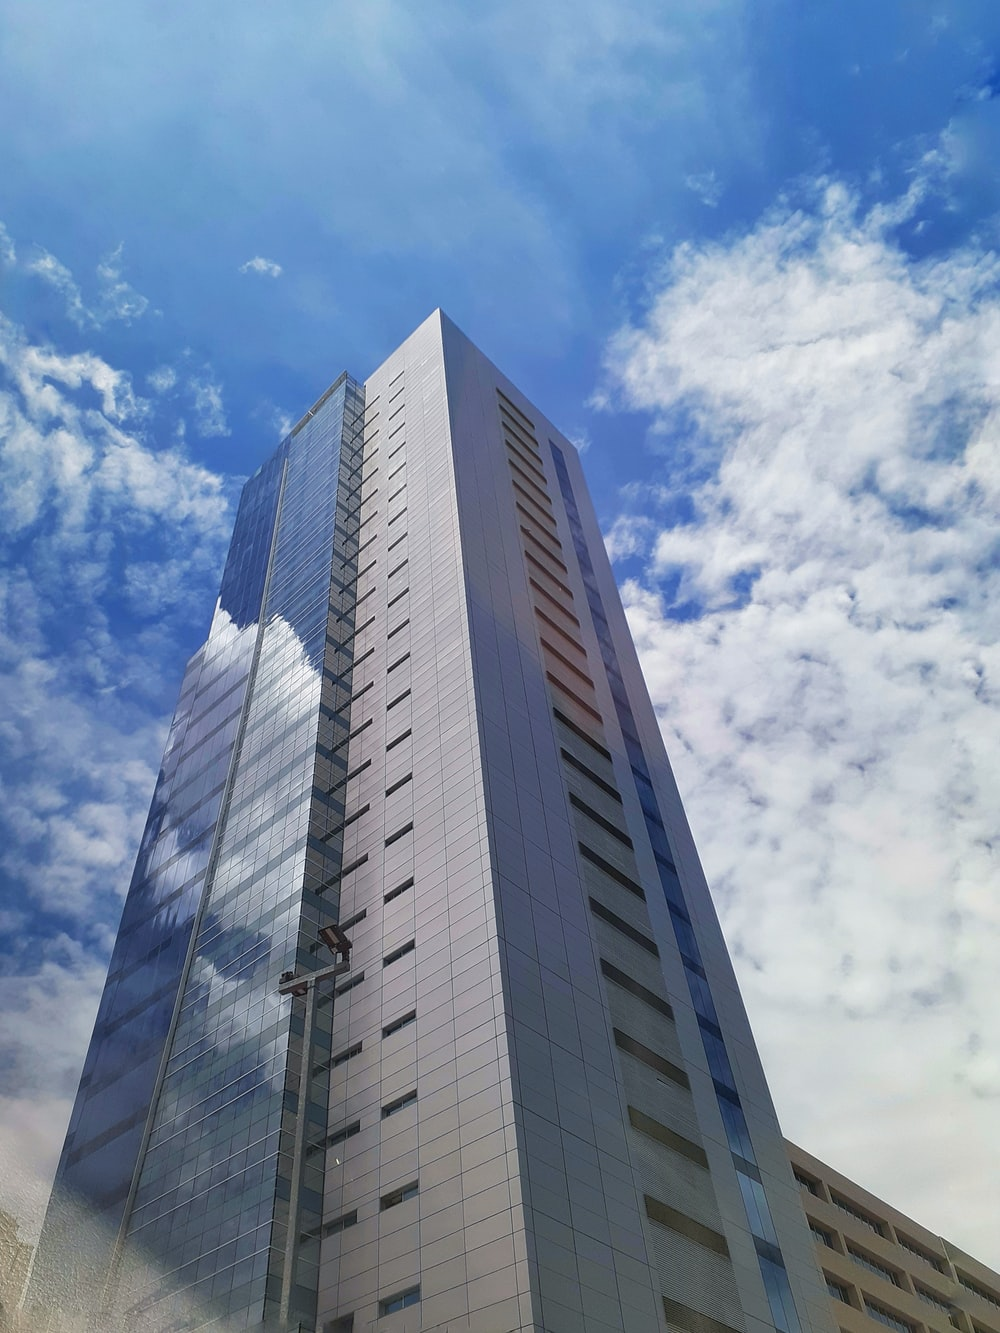 gray building under white clouds and blue sky